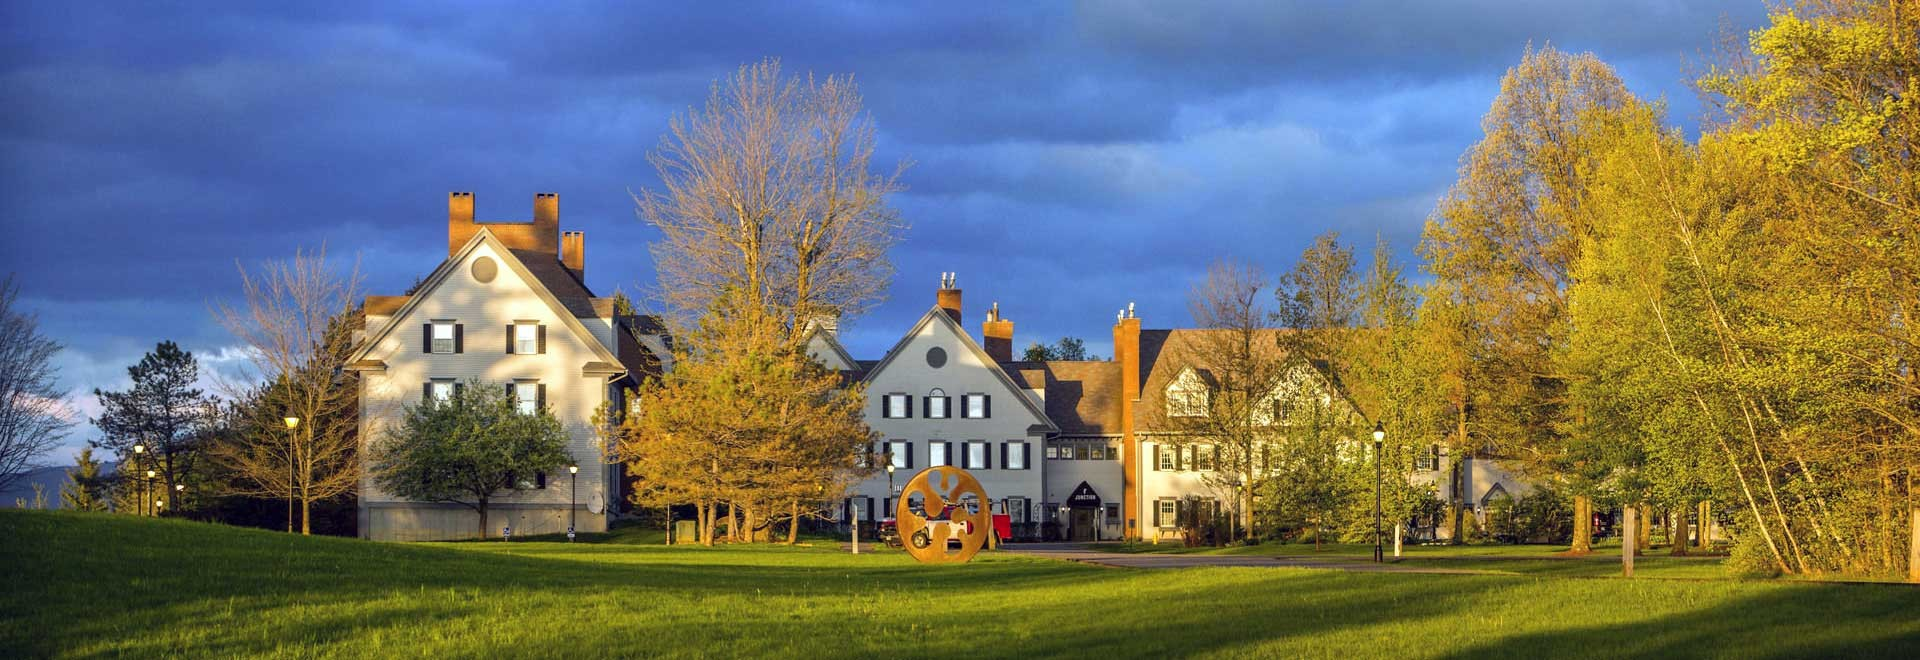 The Essex, Vermont's Culinary Resort & Spa - Book. Travel. Play.